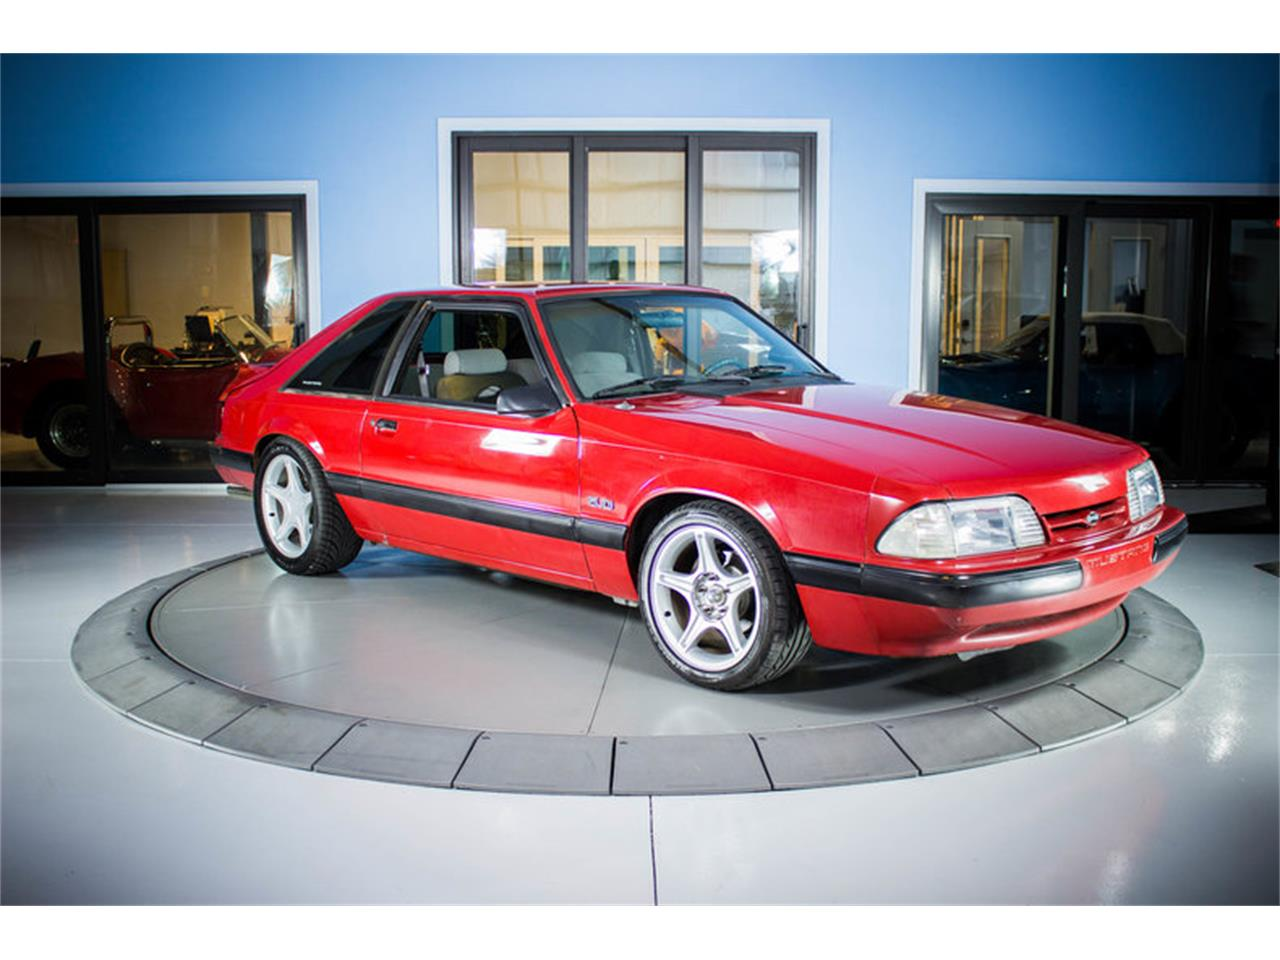 Large Picture of '88 Ford Mustang Fox Body located in Florida - $10,897.00 - MF72